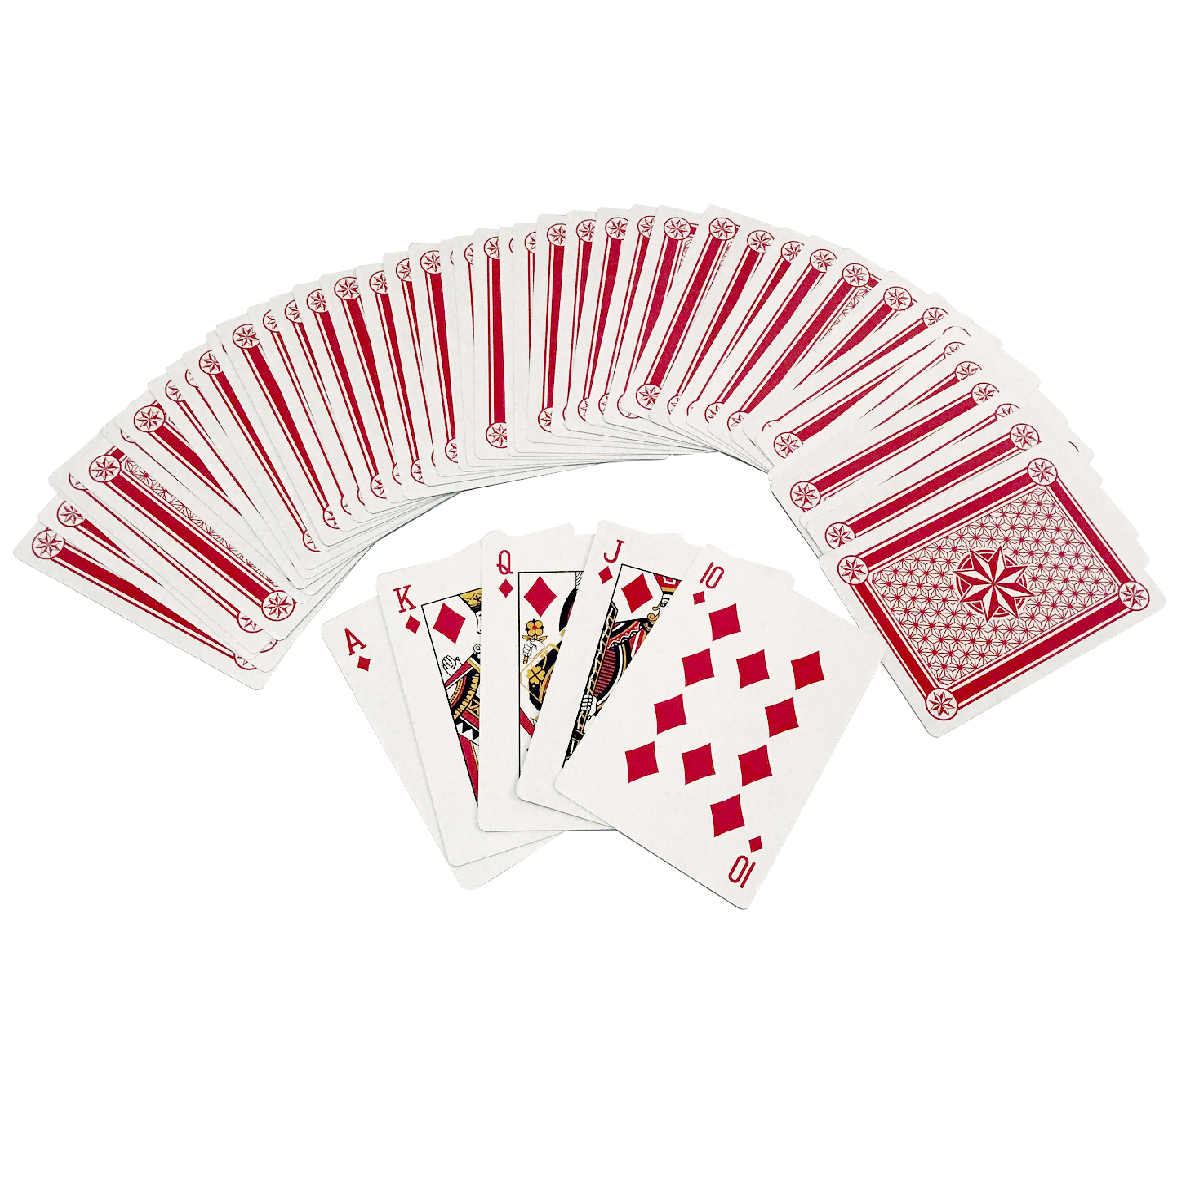 Giant Playing Cards - Walmart.com